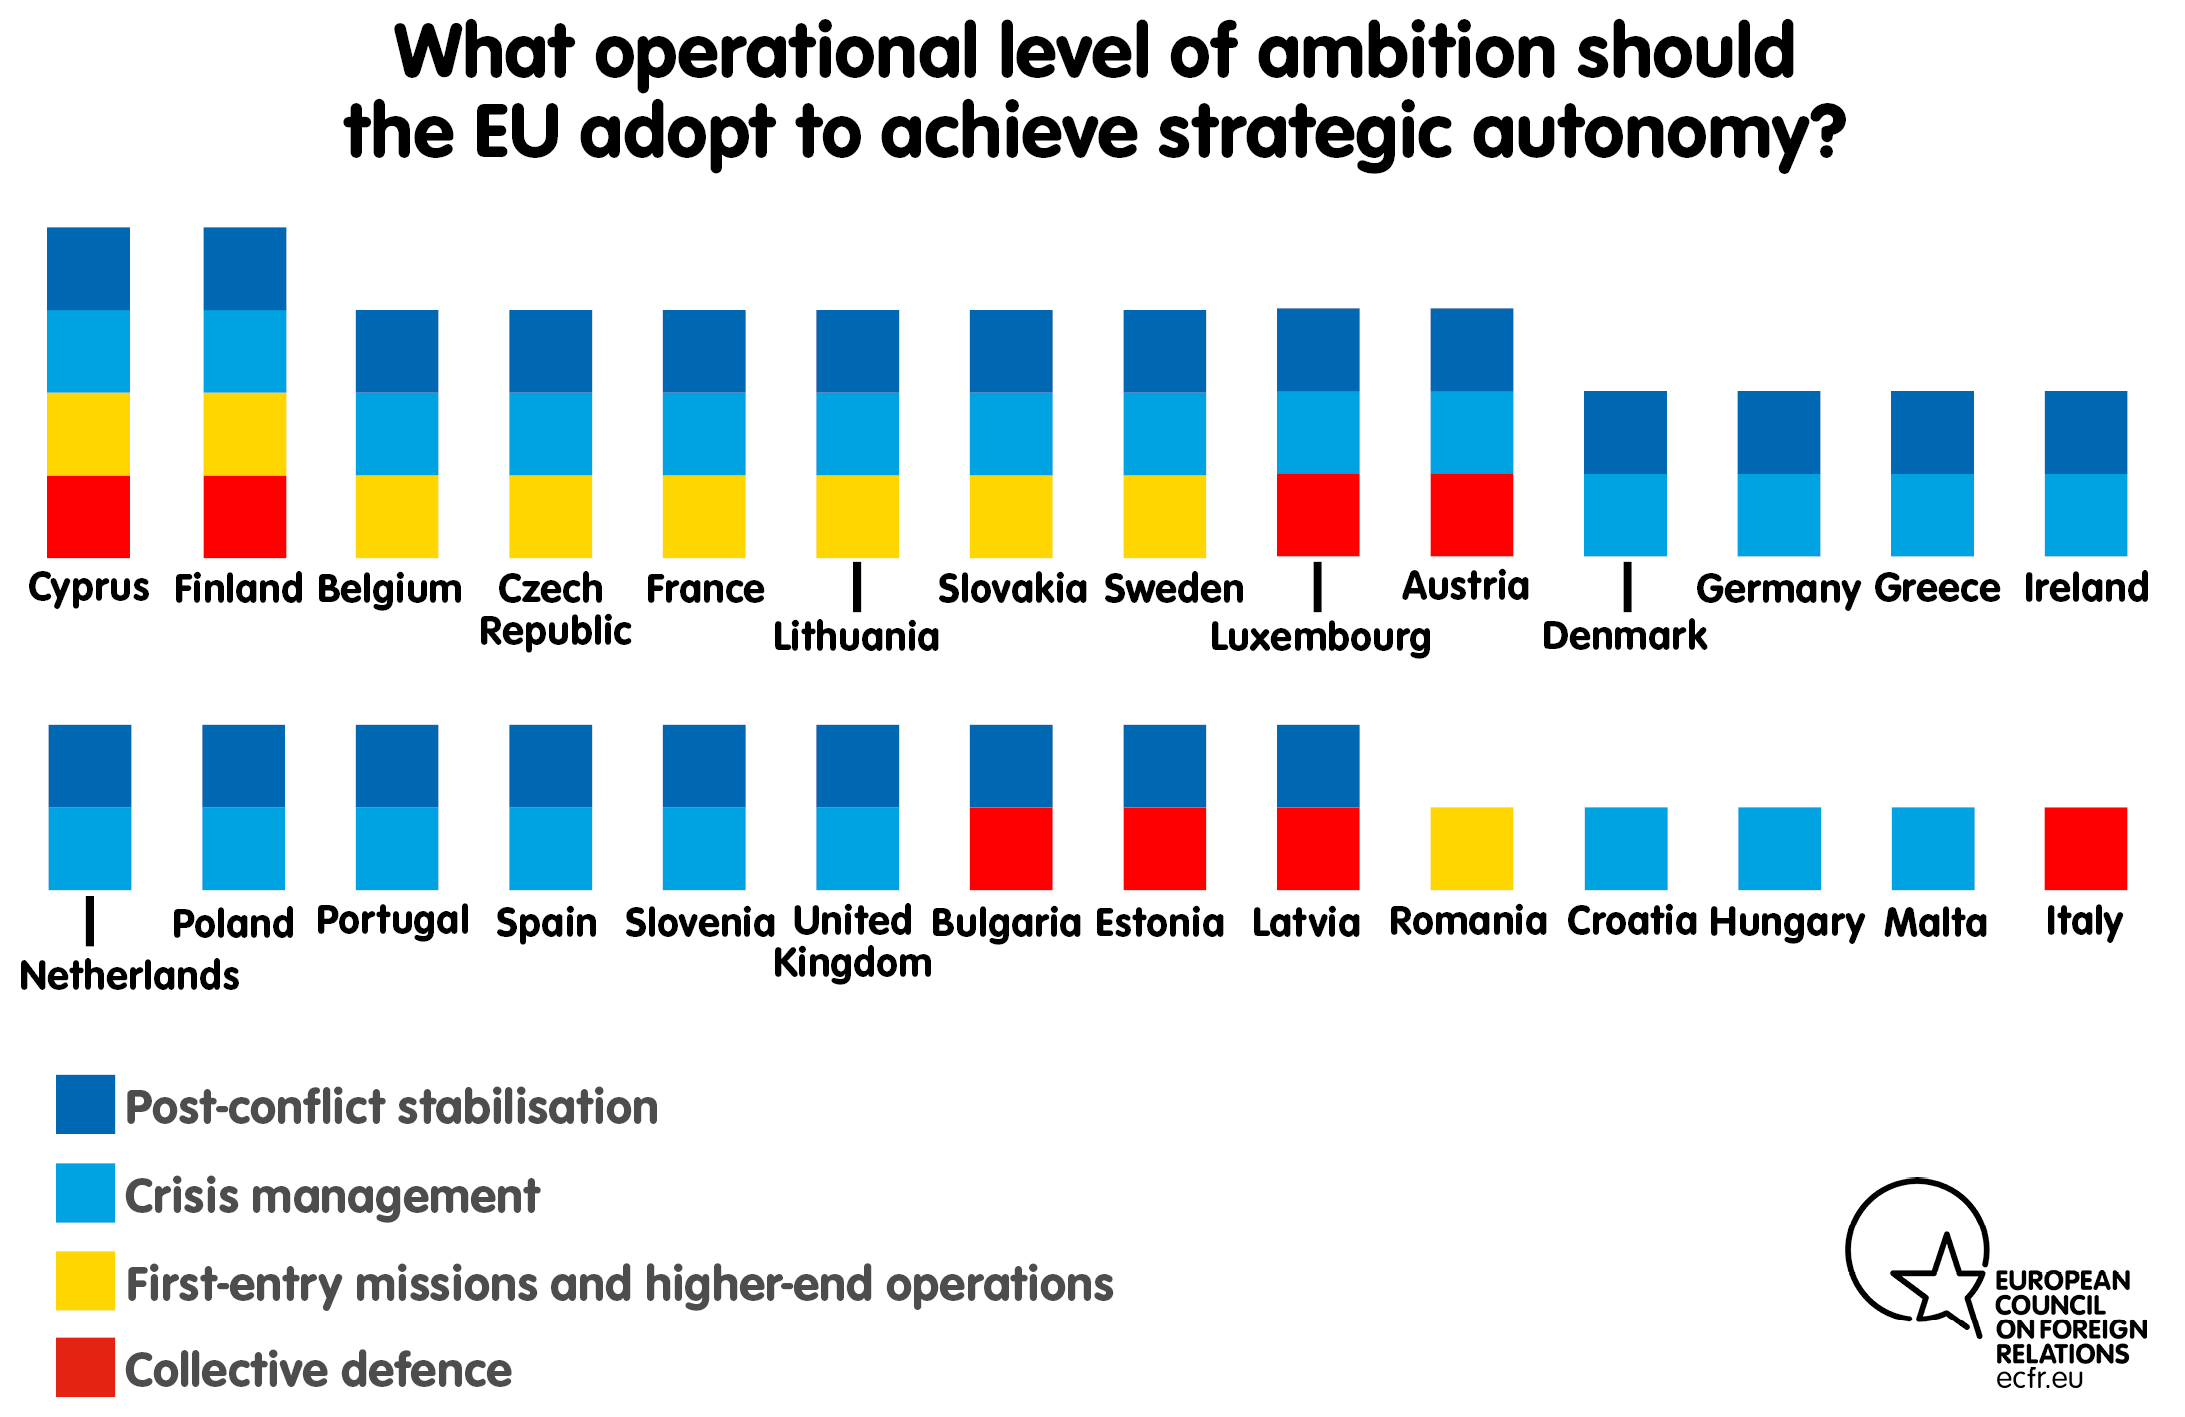 What operational level of ambition should the EU adopt to achieve strategic autonomy